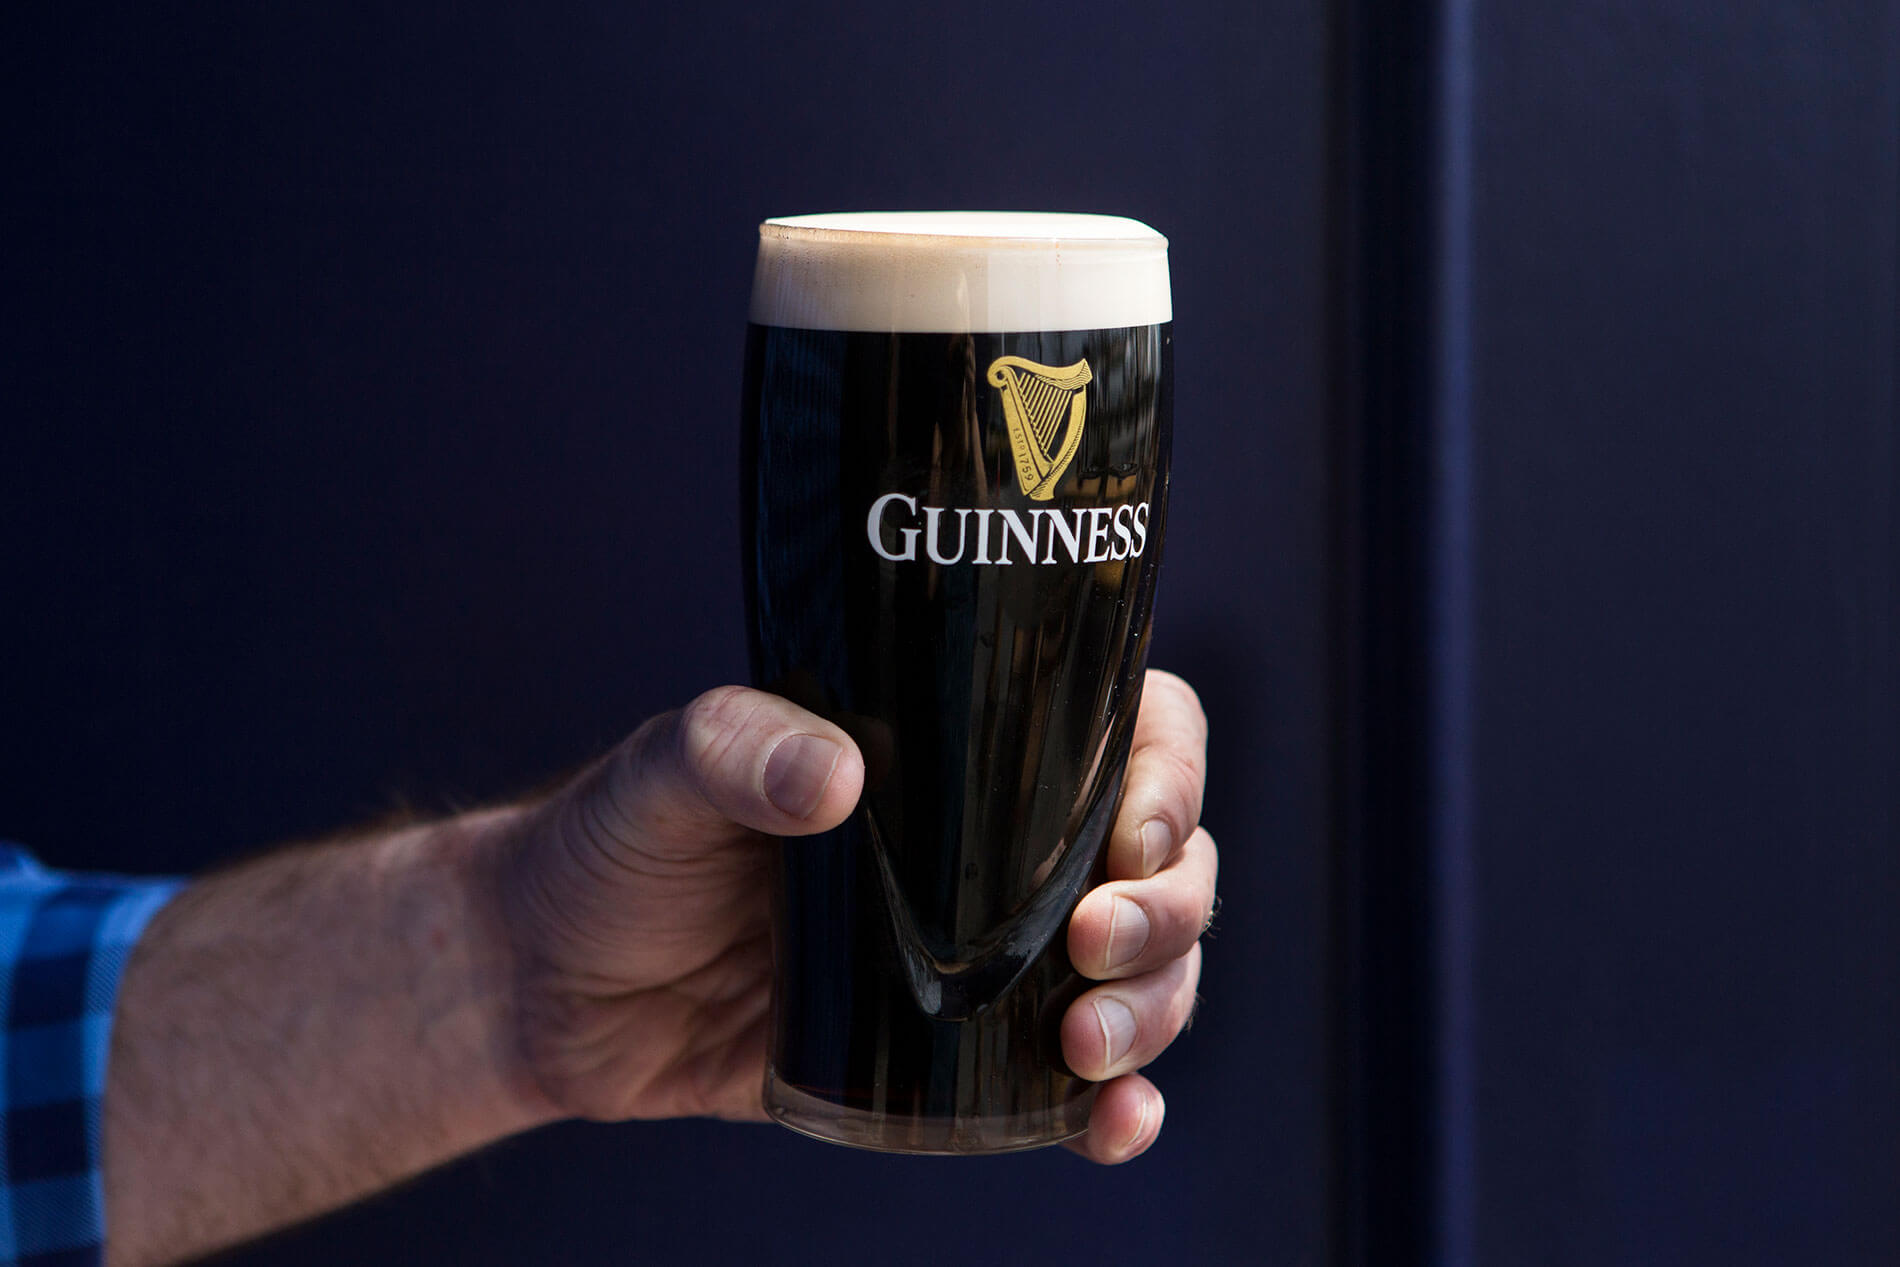 kirwans-51-drinks-guinness-topgall1.jpg